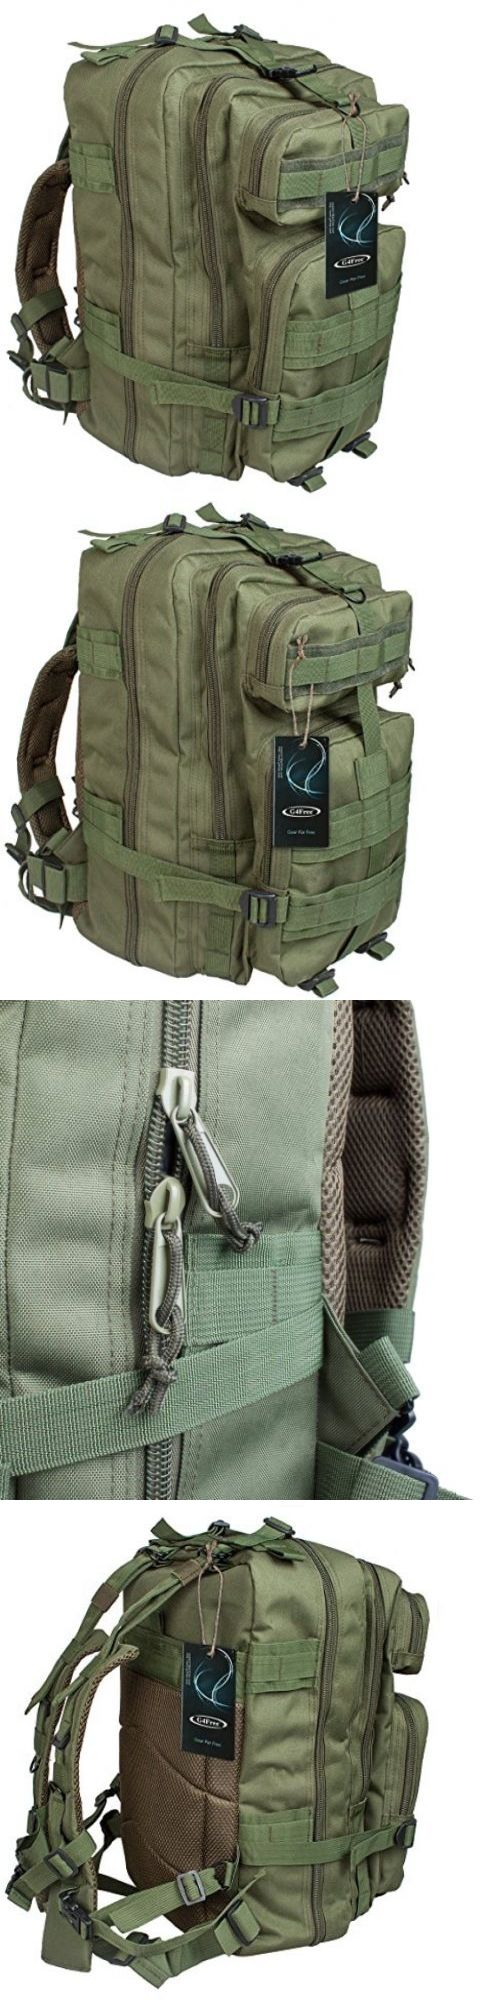 Day Packs 87122: Hiking Prepp Military Rucksacks Tactical Molle Backpack Camping Trekking Bag 40L -> BUY IT NOW ONLY: $32.84 on eBay!